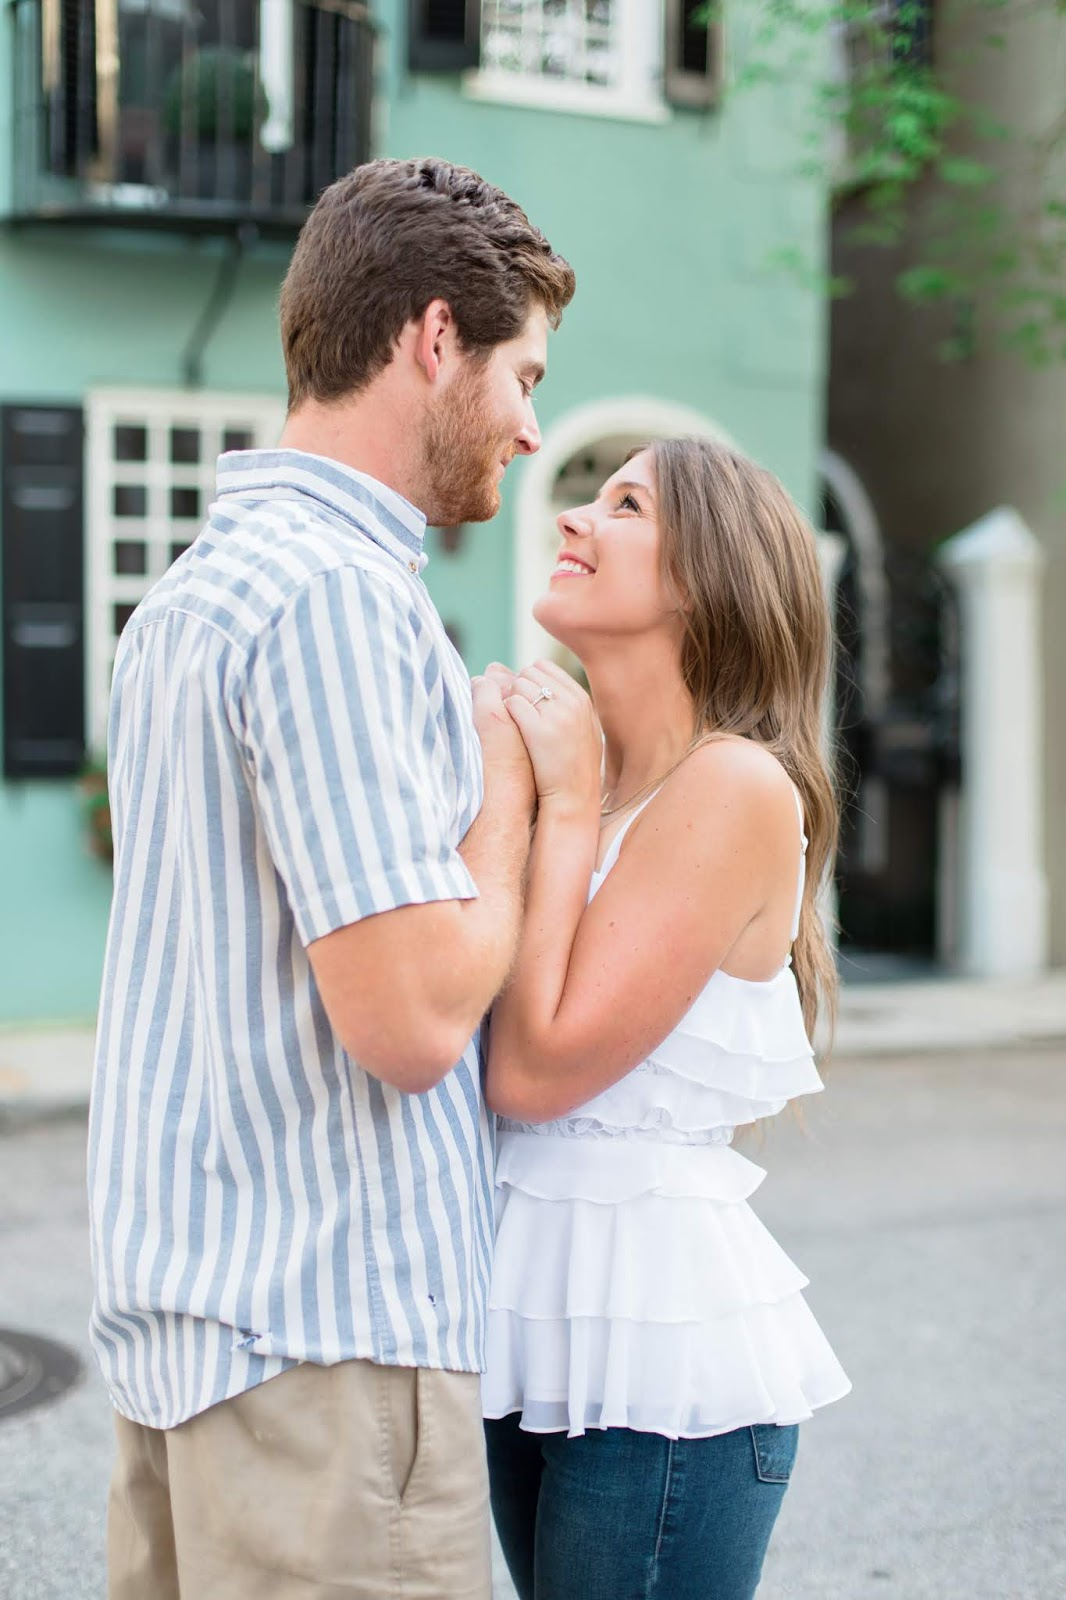 Our Downtown Charleston Engagement Photoshoot - Chasing Cinderella